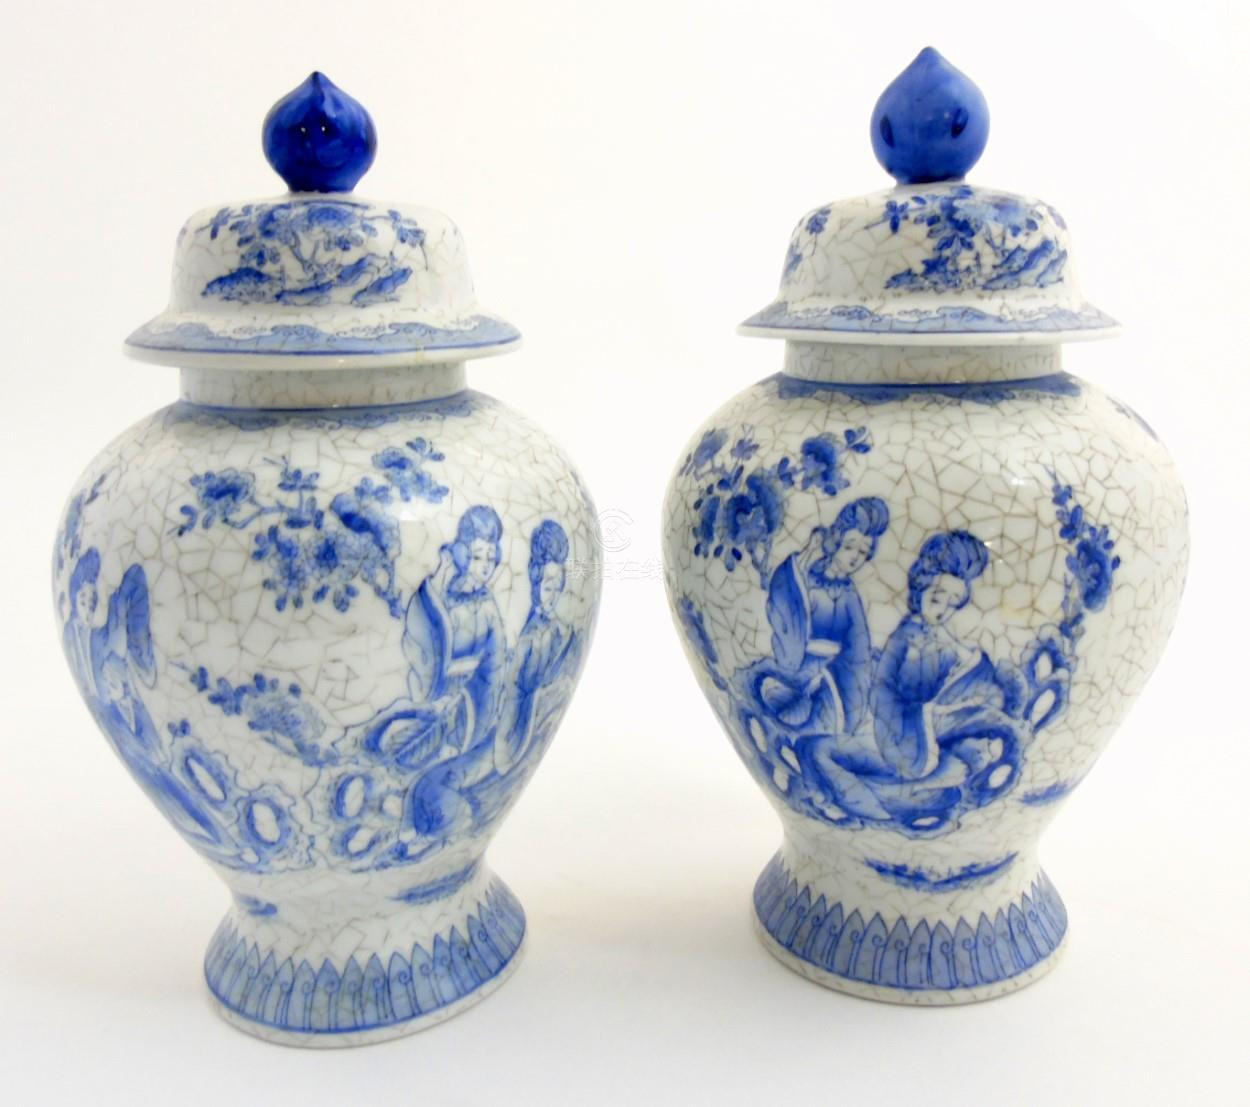 Maitland Smith Porcelain Vase Of 51bidlive A Pair Of Maitland Smith Blue and White oriental Lidded In A Pair Of Maitland Smith Blue and White oriental Lidded Vases with Craquelure Style Decoration